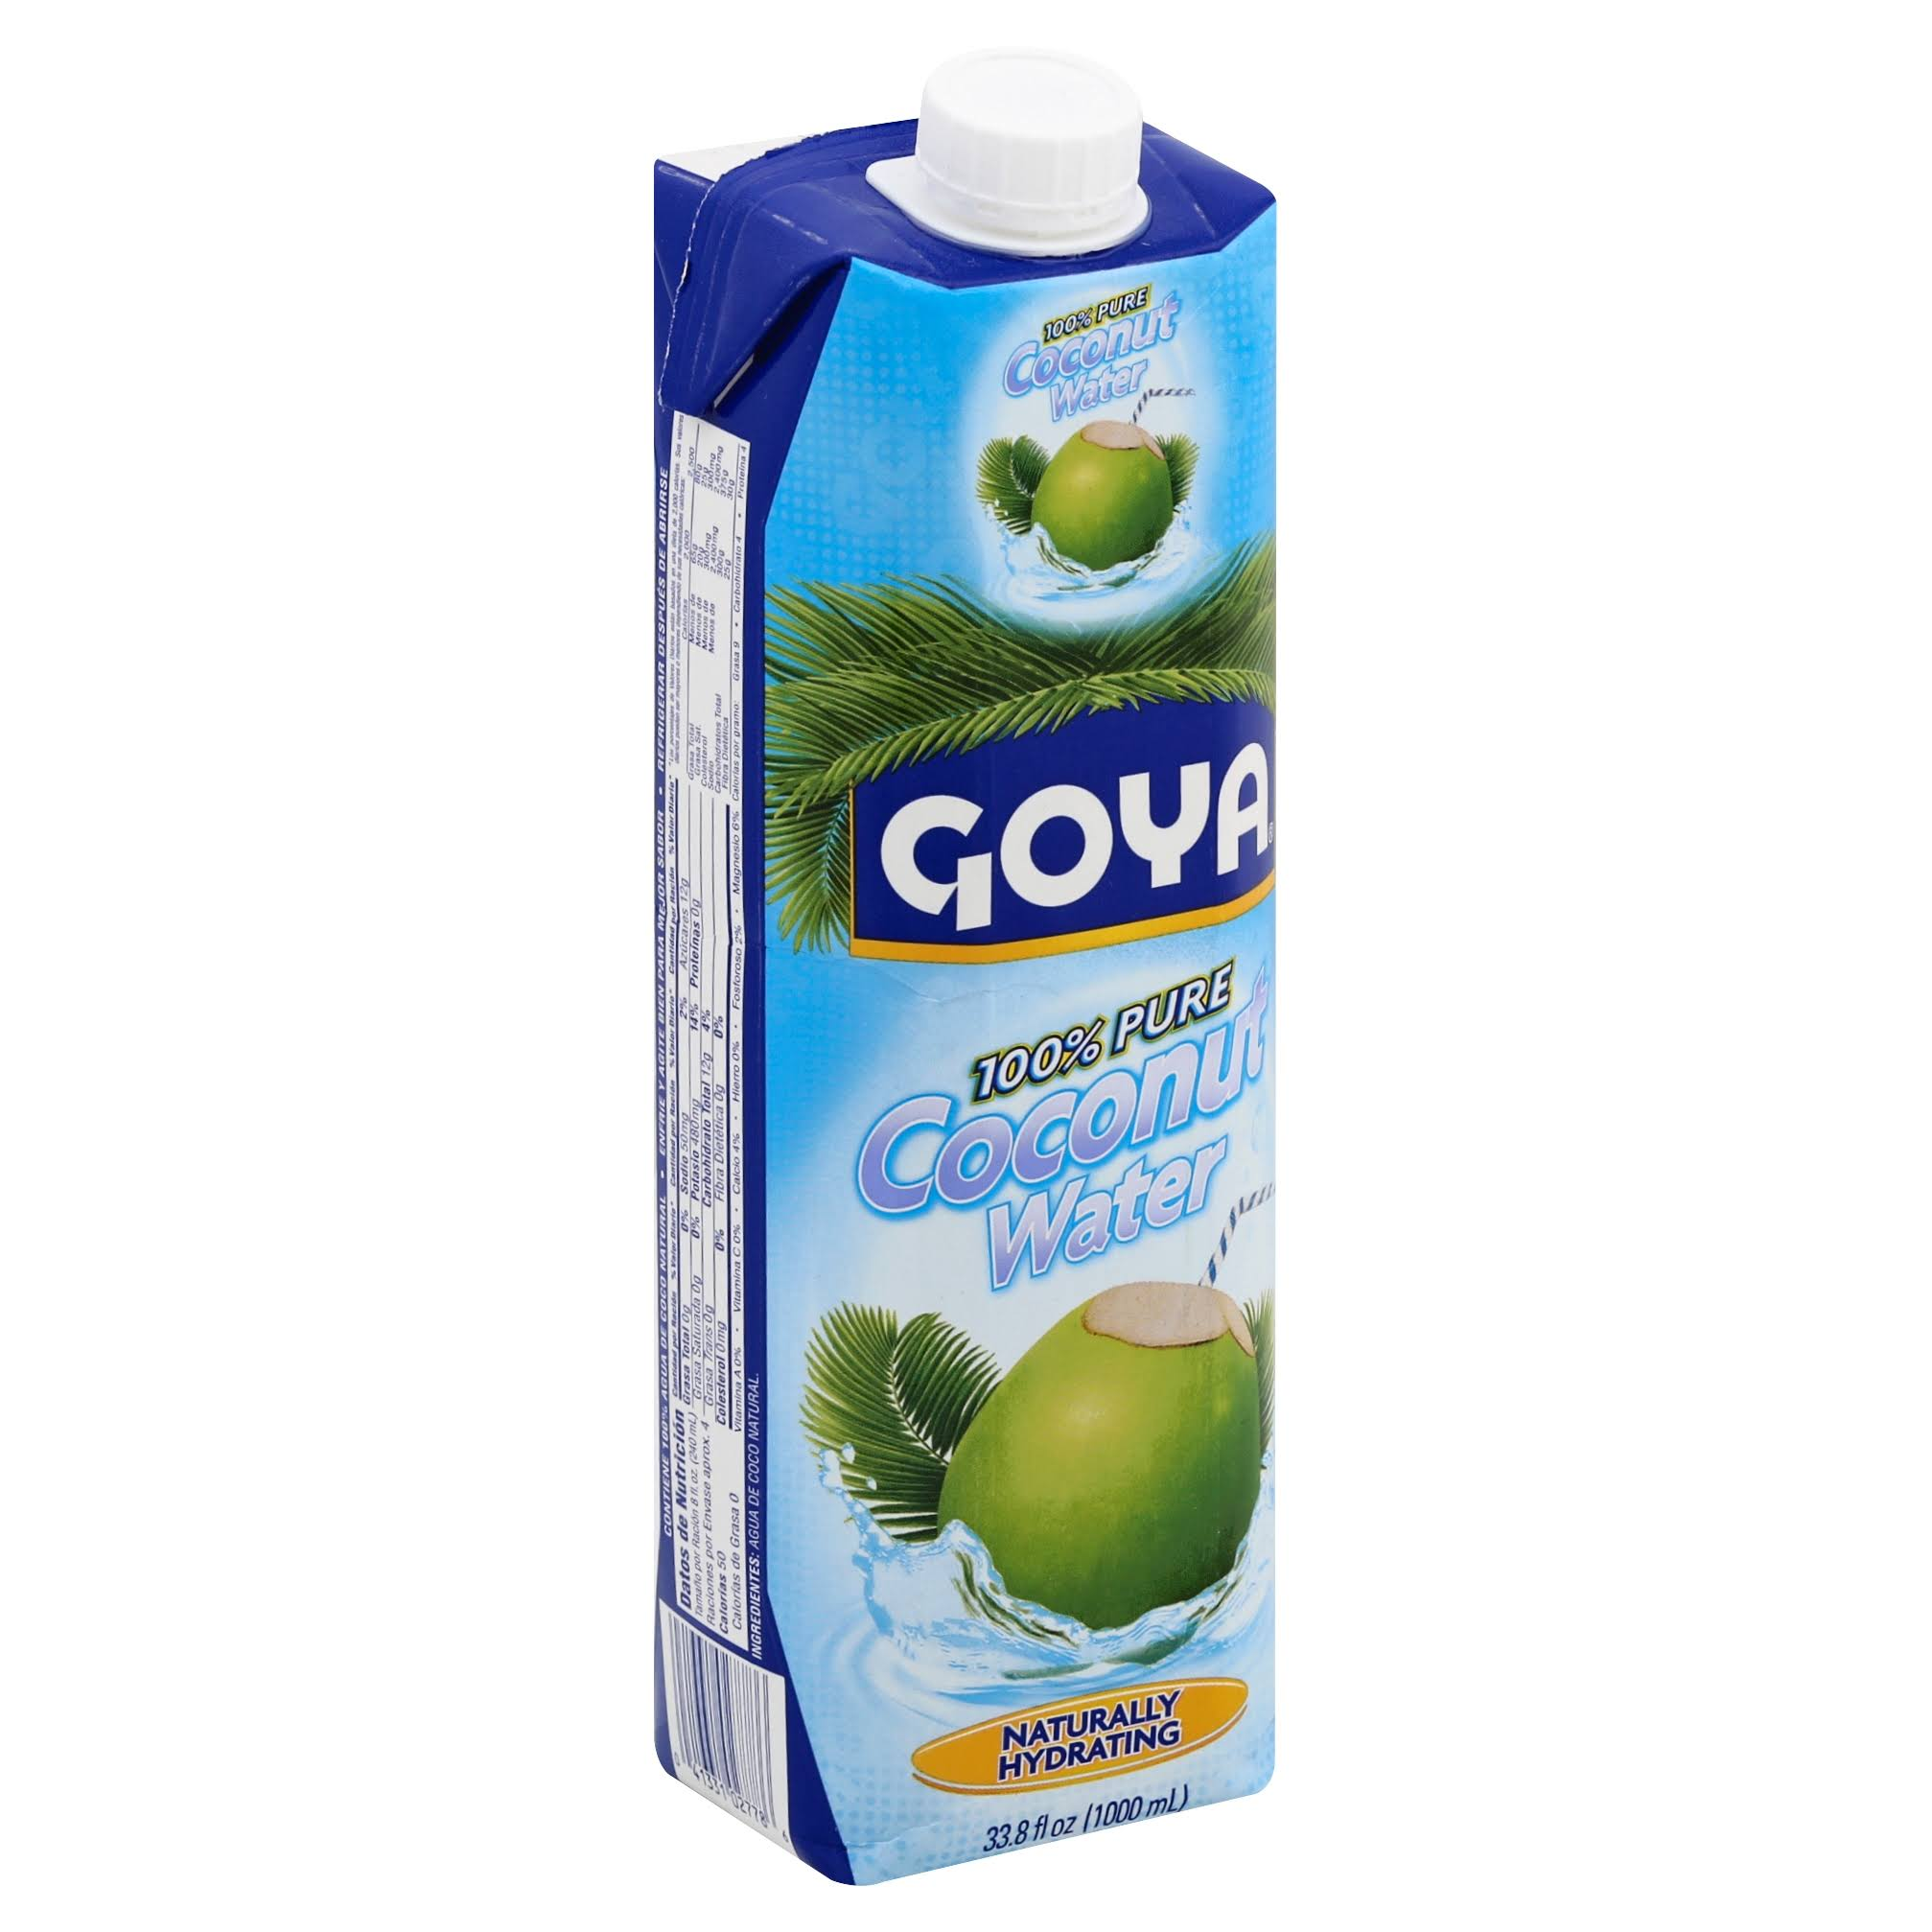 Goya Chorizo Water - 33.8oz, Coconut